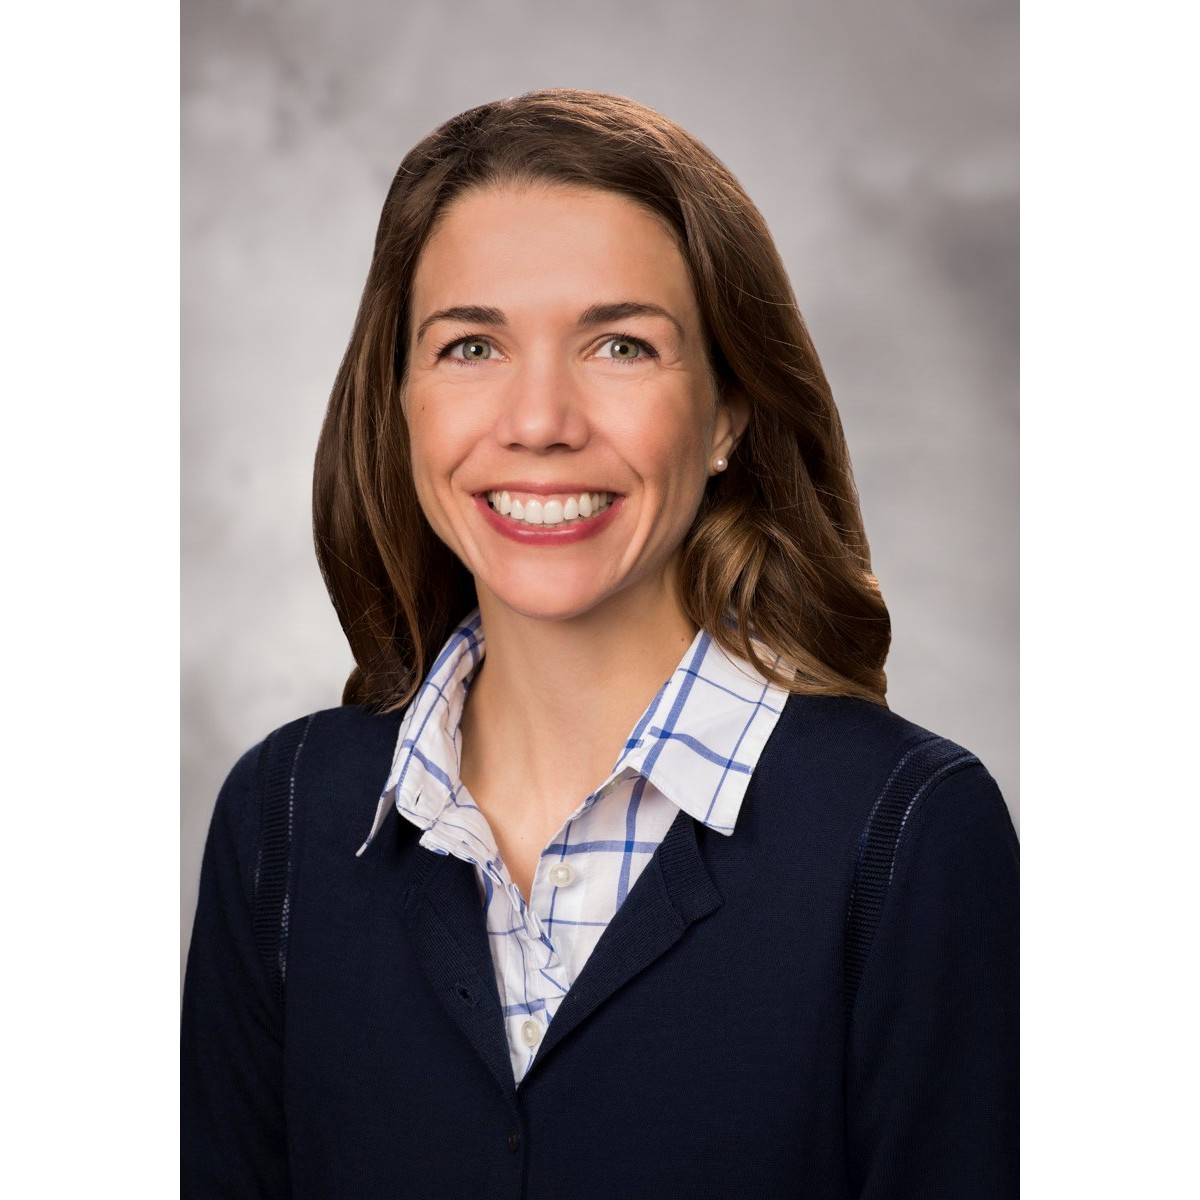 Kate Groh, MD